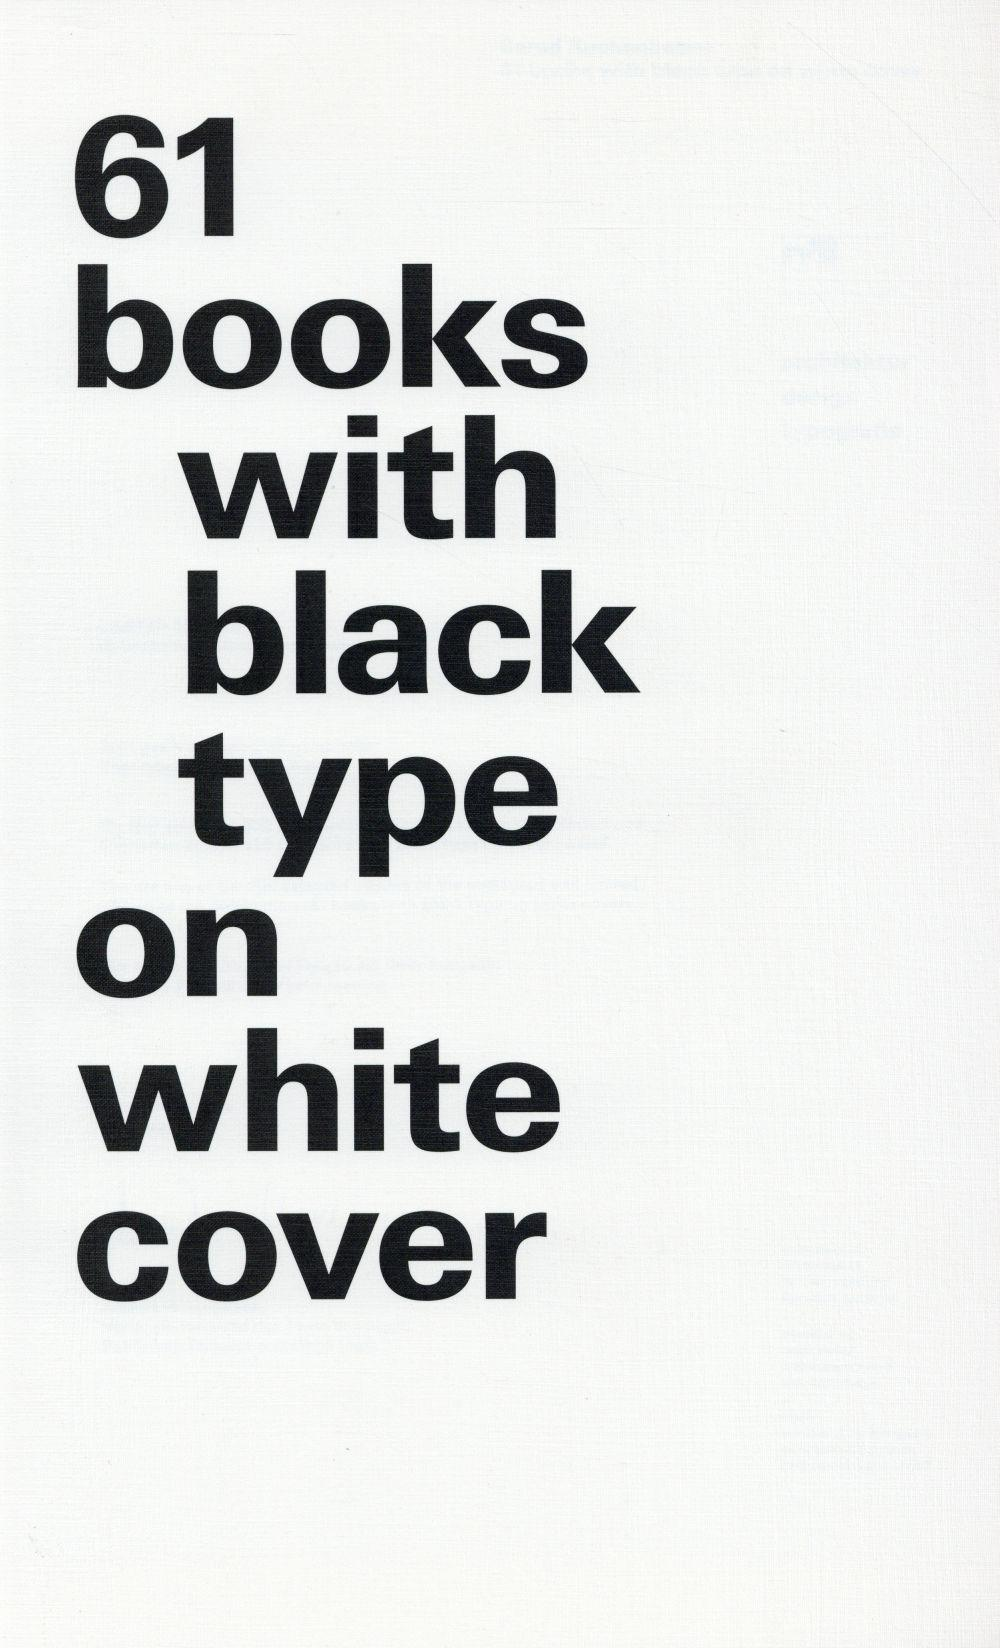 61 books with black type on white cover  - Kuchenbeiser Be